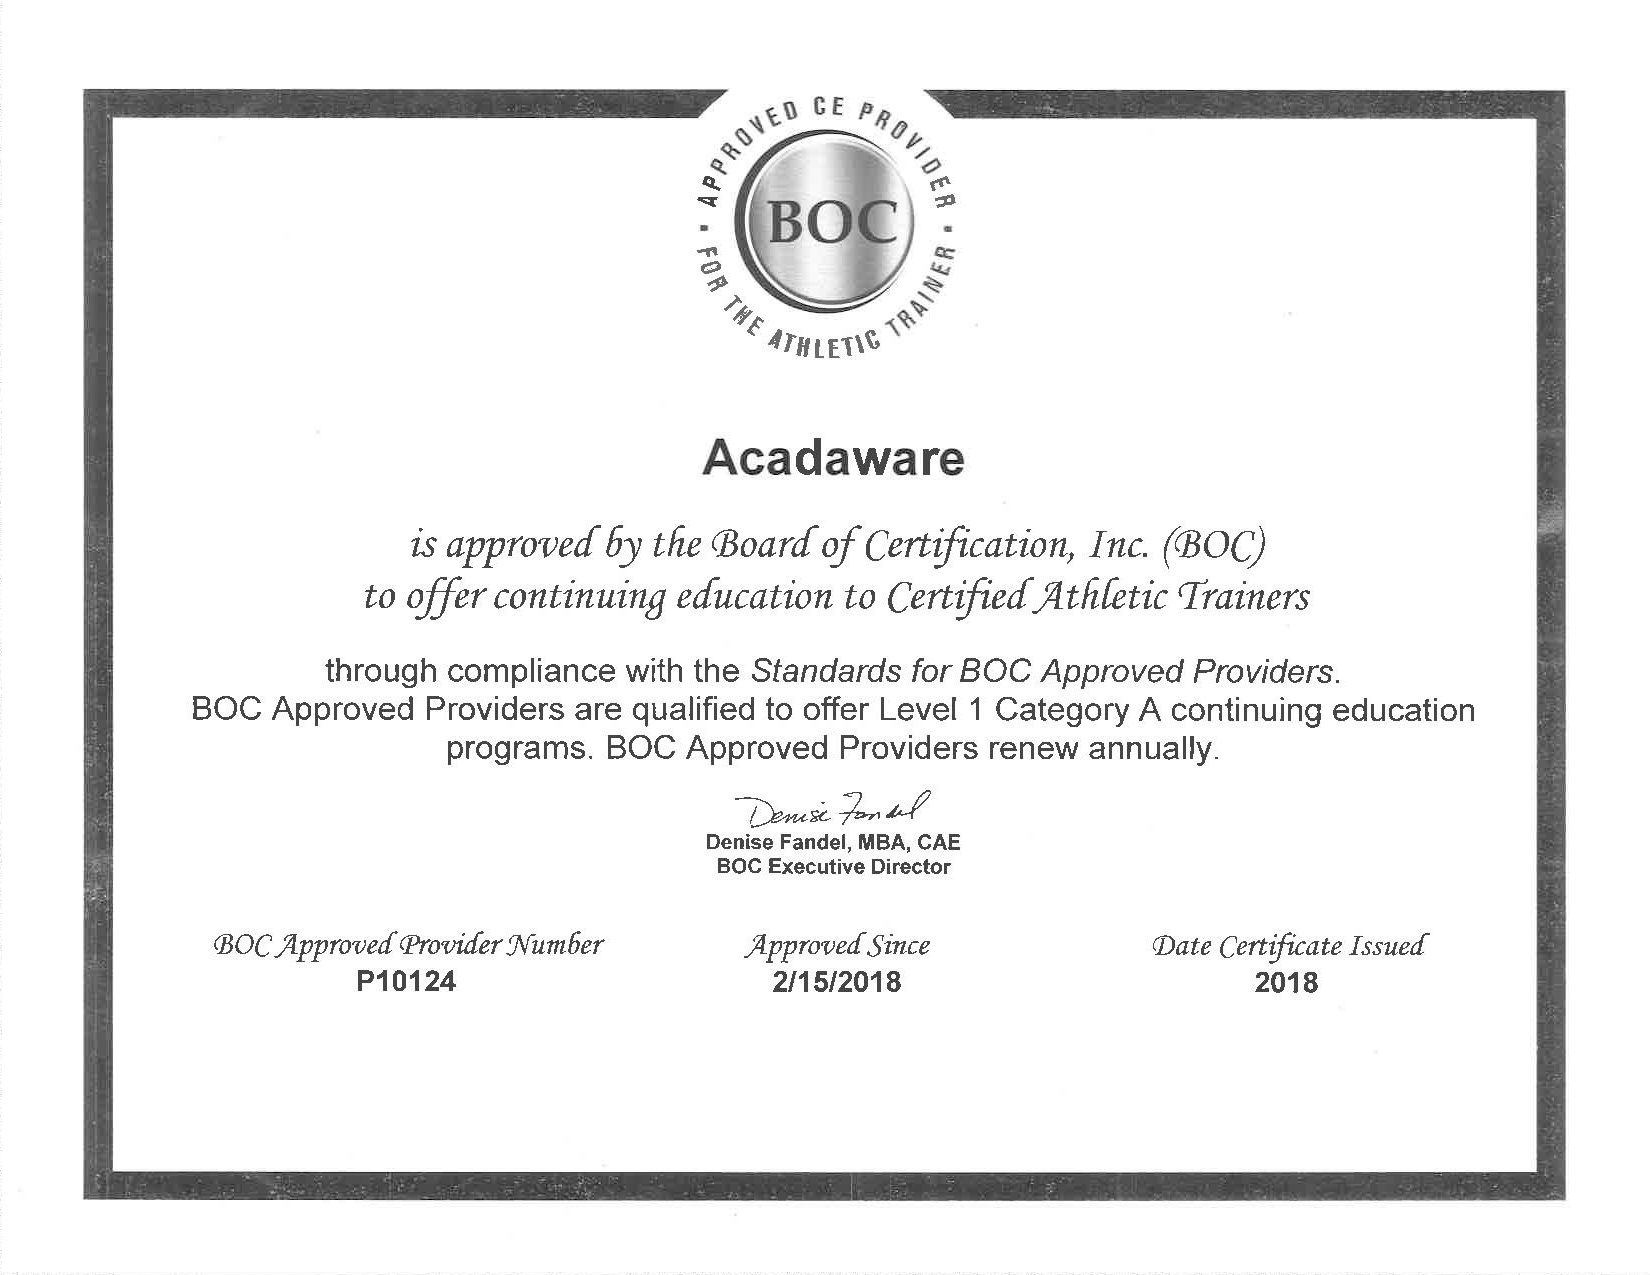 acadaware_BOC_Certificate-page-001